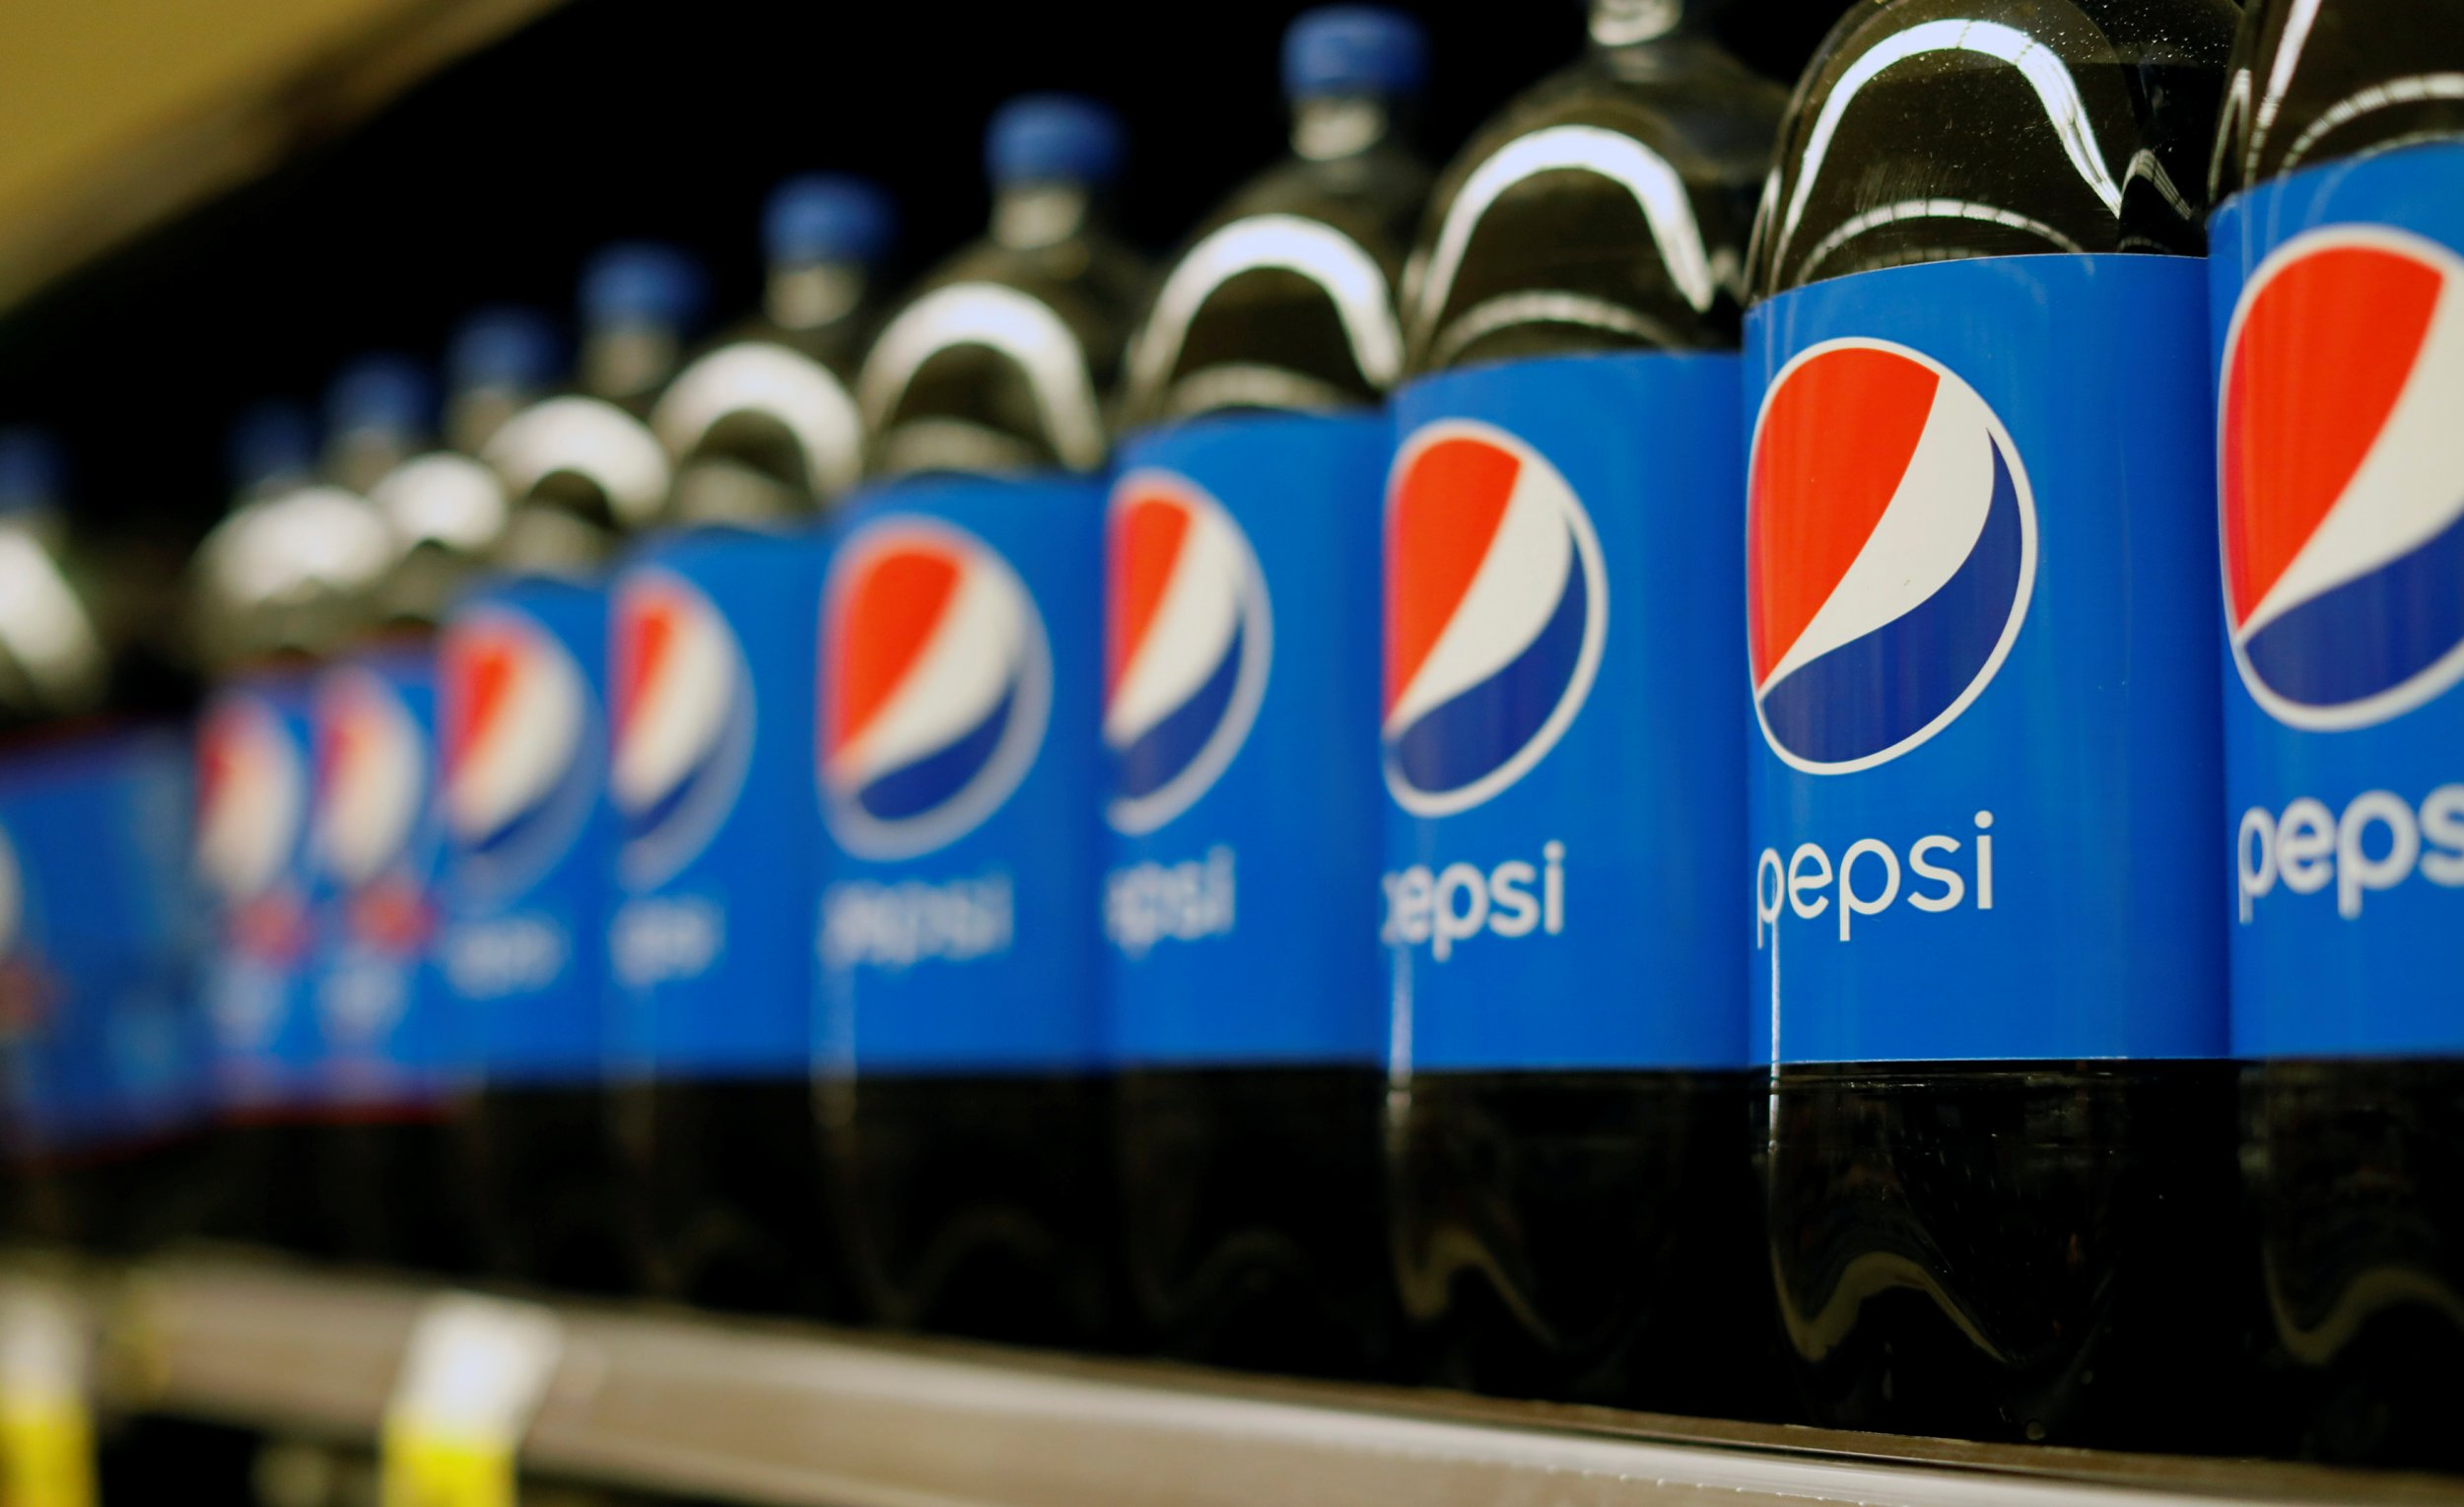 russia accuses pepsi of espionage and hacking state agency s files